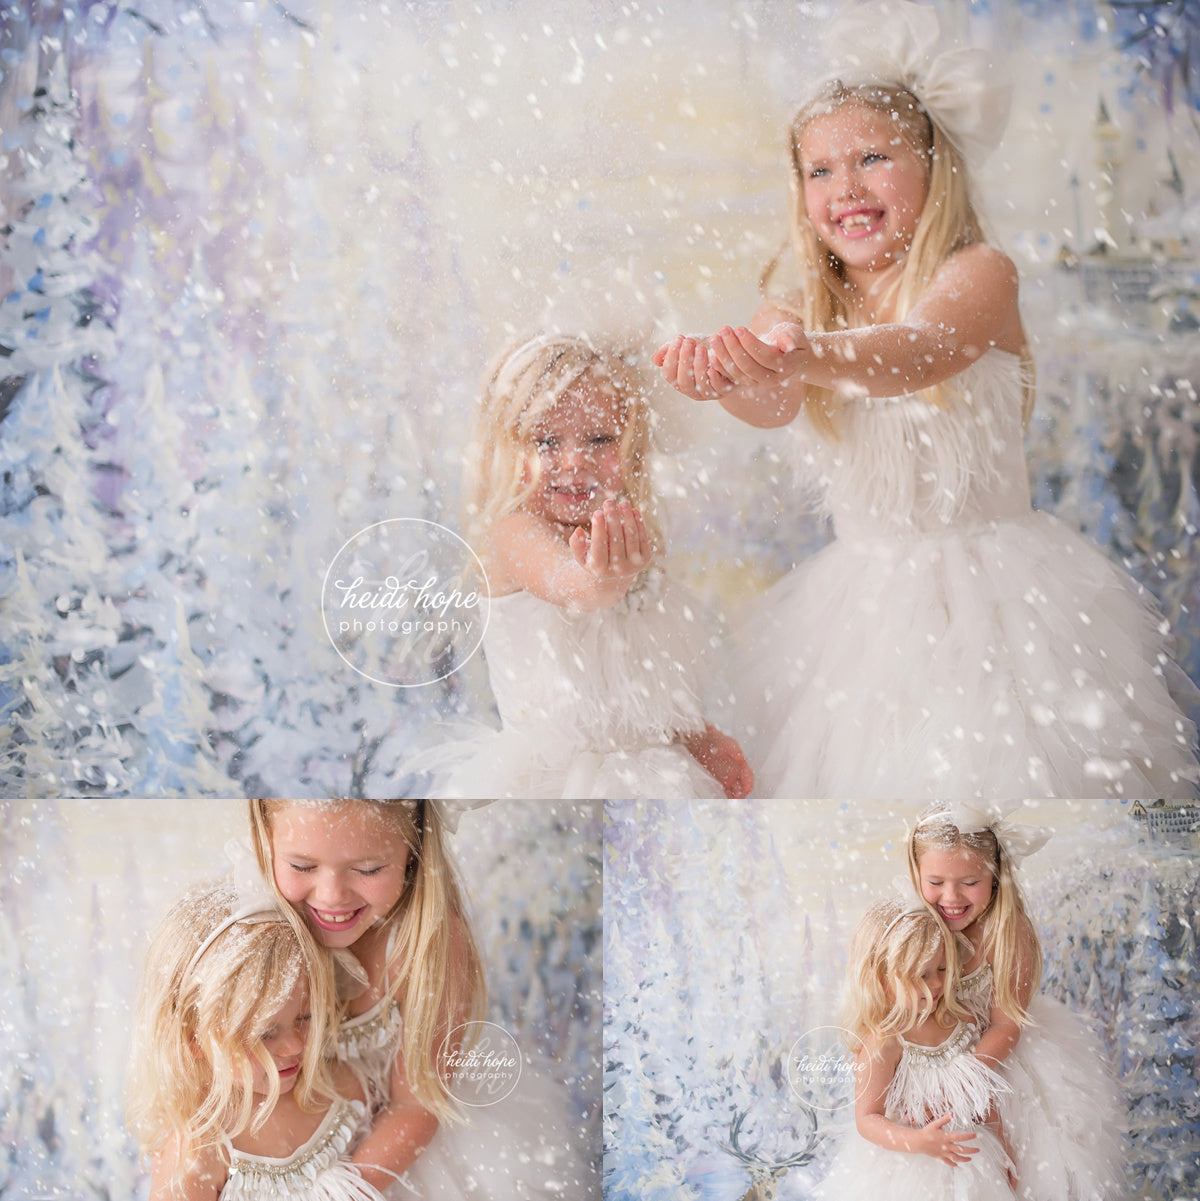 Heidi Hope Photography - Fine Art Backdrops for Professional Photographers